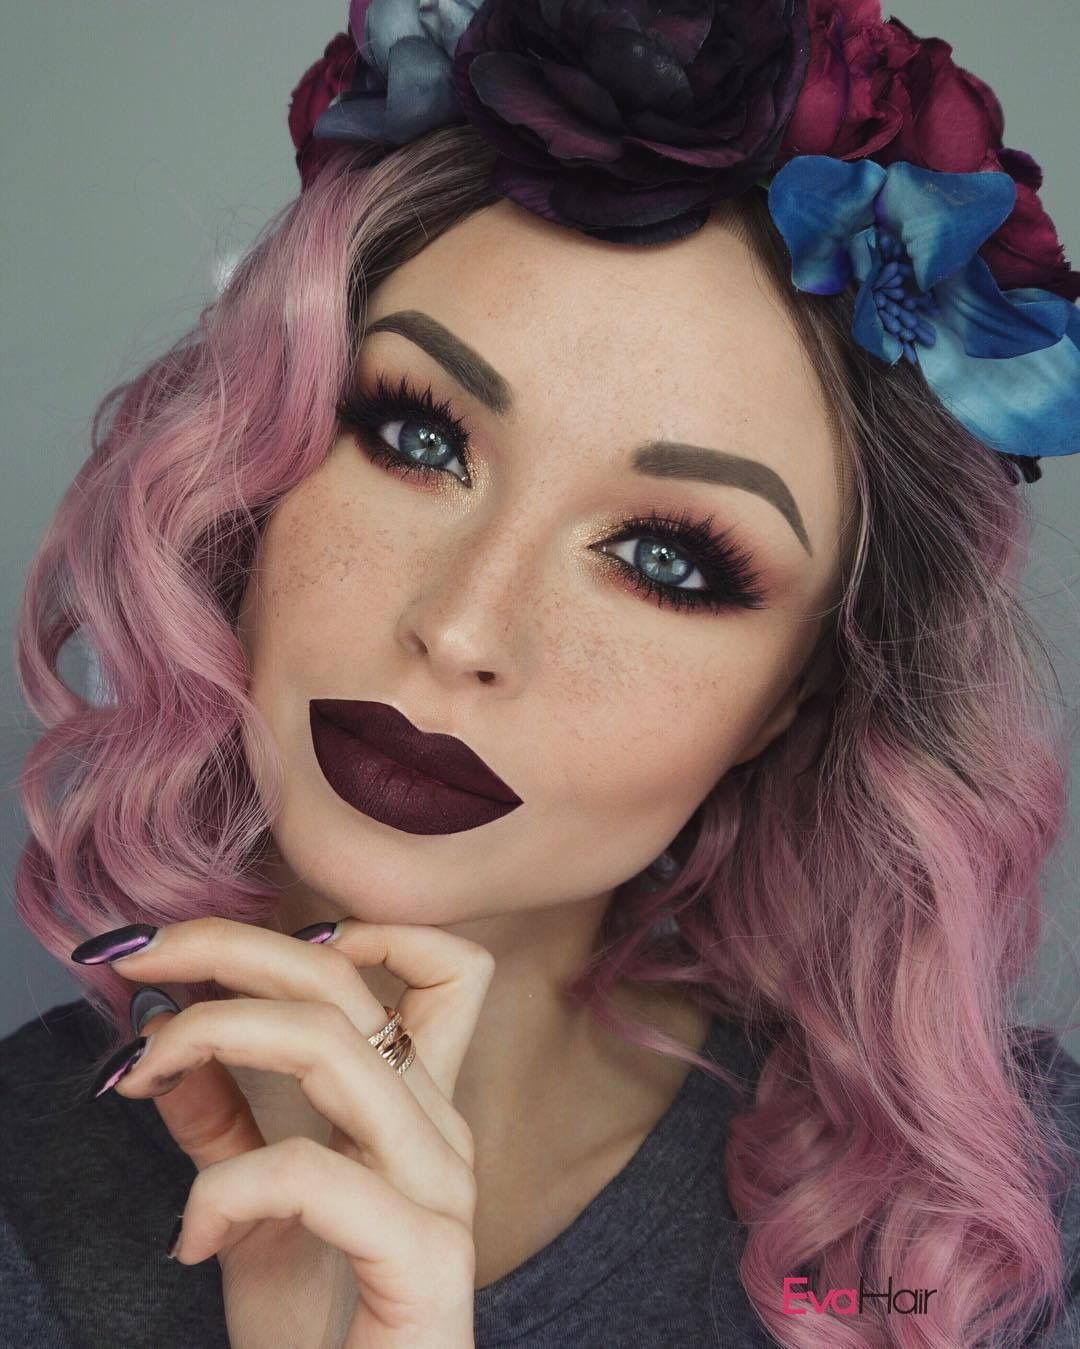 Nose piercing bump pus  Pin by Jess on stuff and whatnot  Pinterest  Pink hair Hair